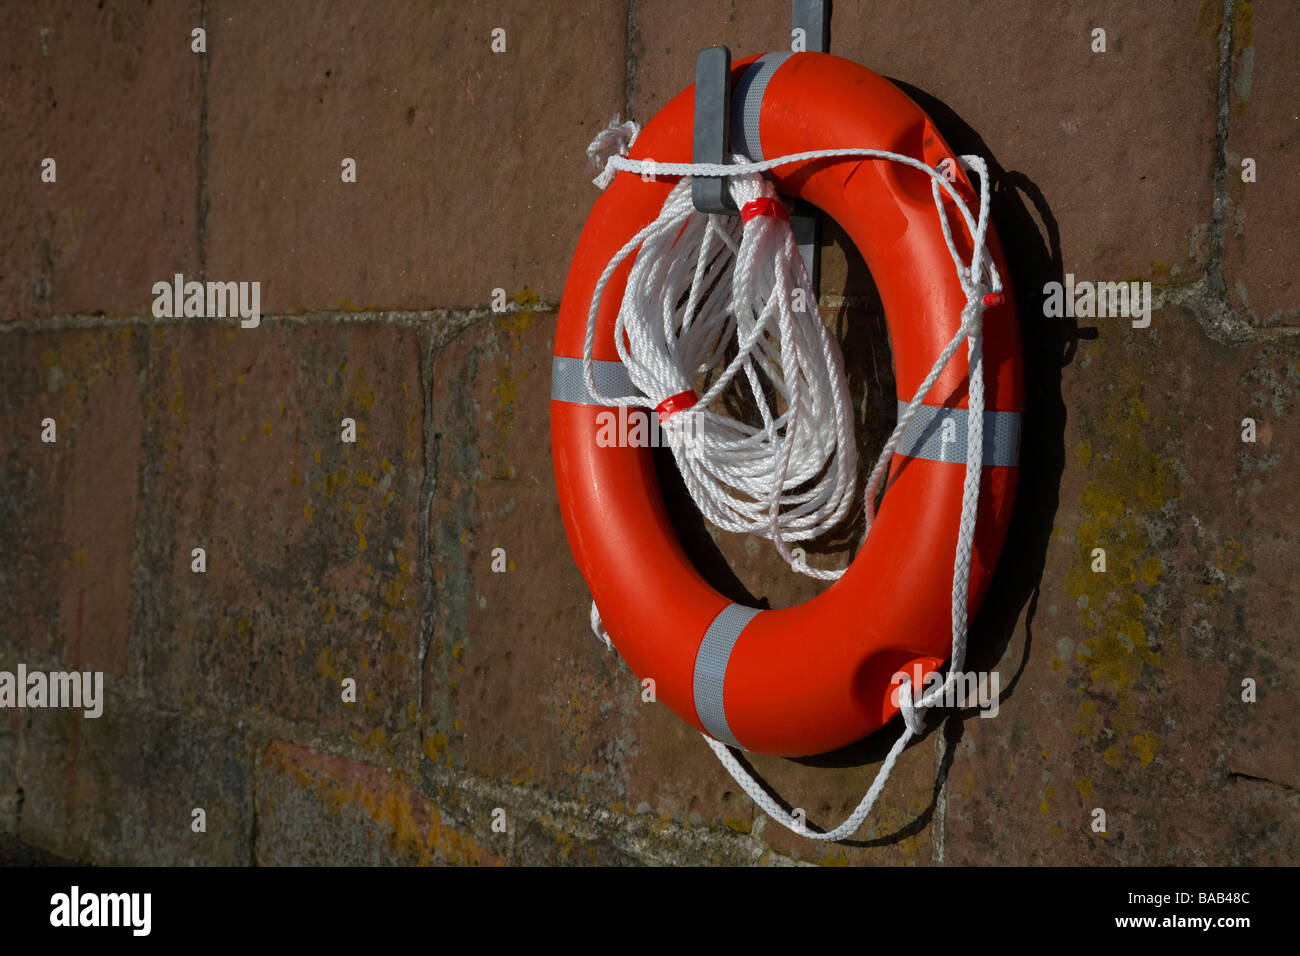 brand new bright red lifebelt with white rope hanging on a hanger on brown harbour wall - Stock Image